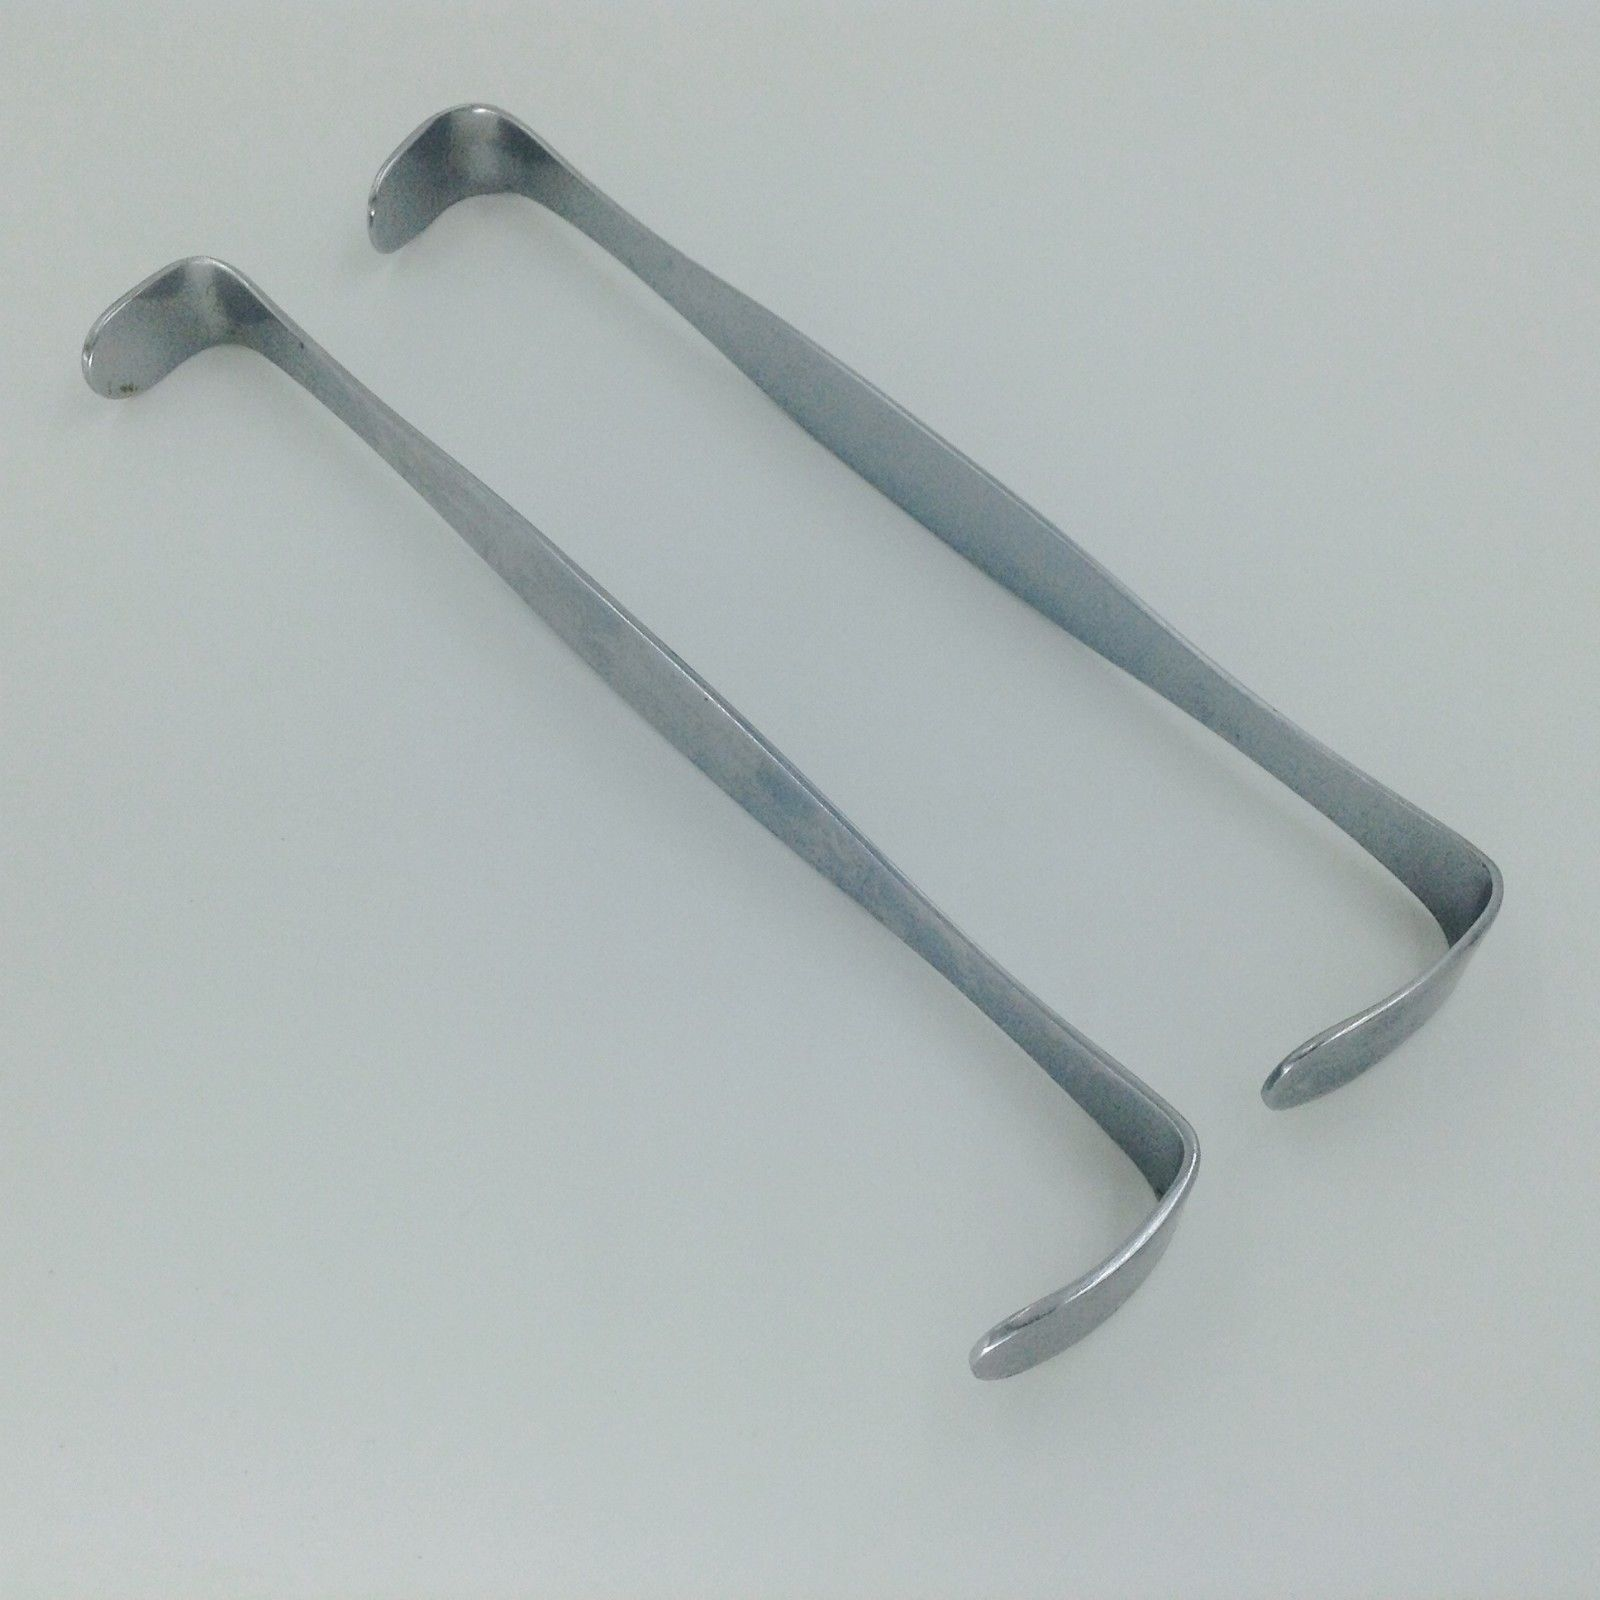 A Set Of Farabeuf Tissue Retractor Veterinary Orthopedics Instruments